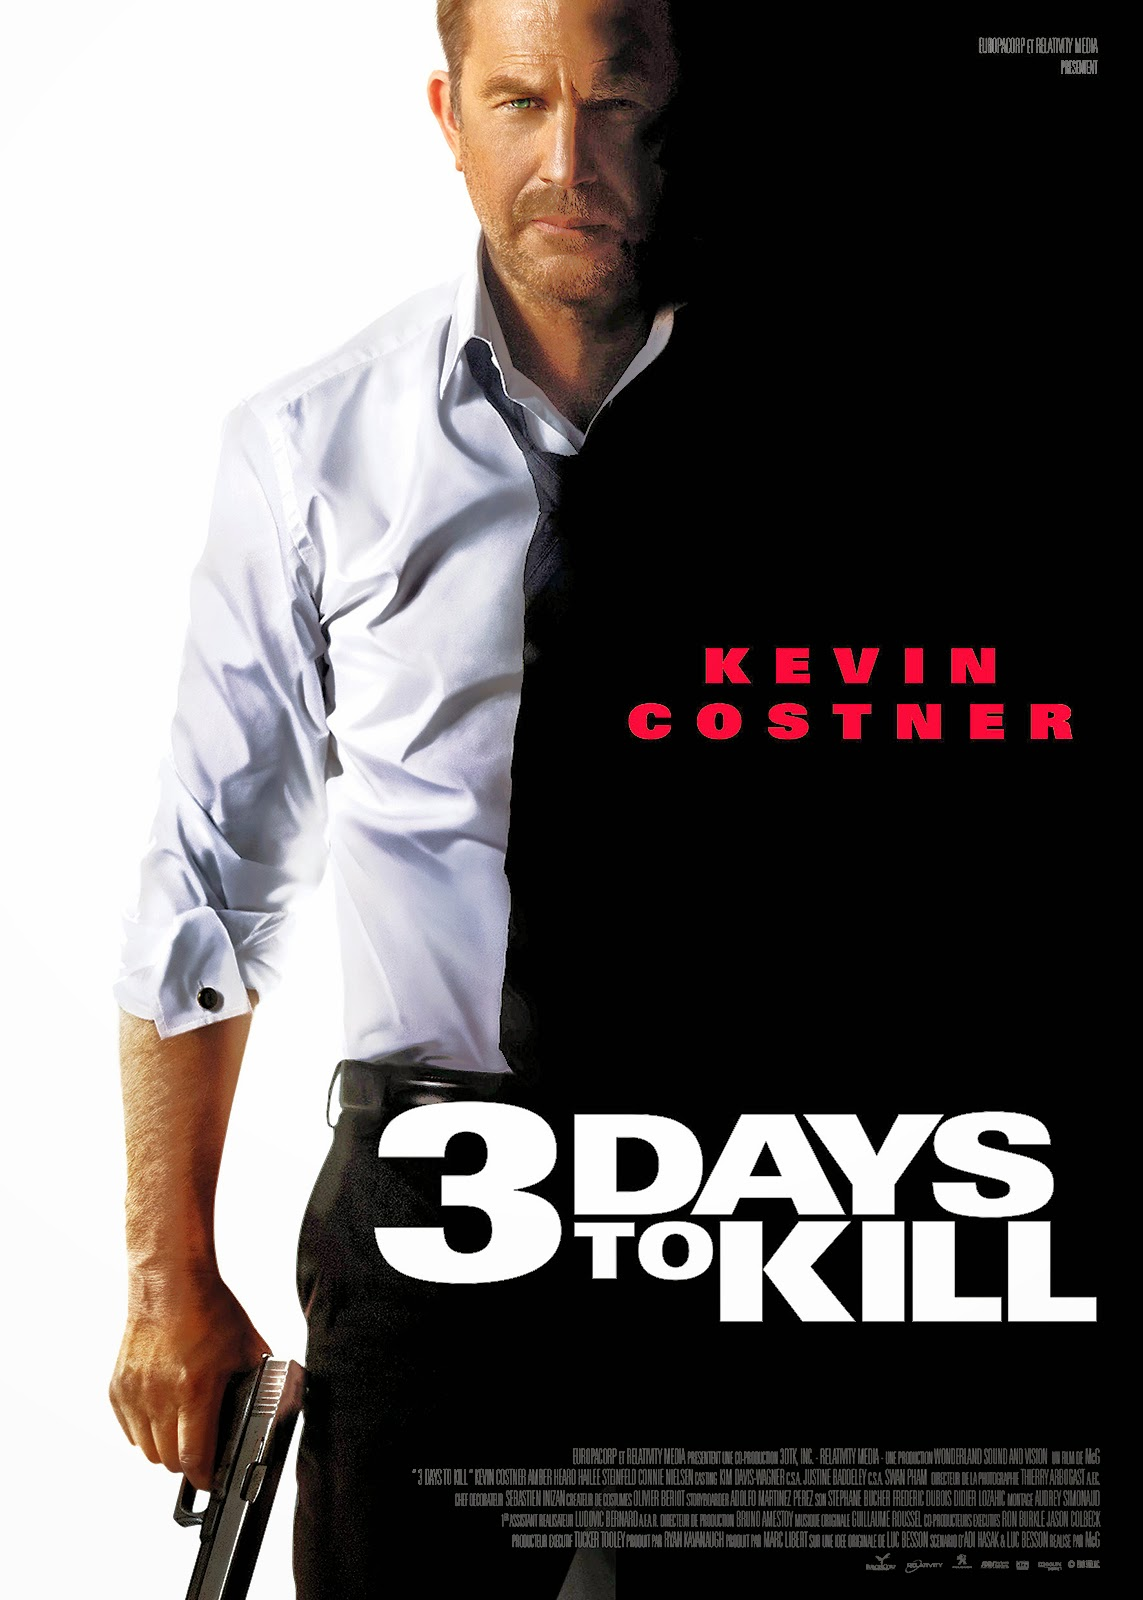 http://fuckingcinephiles.blogspot.fr/2014/03/critique-3-days-to-kill.html